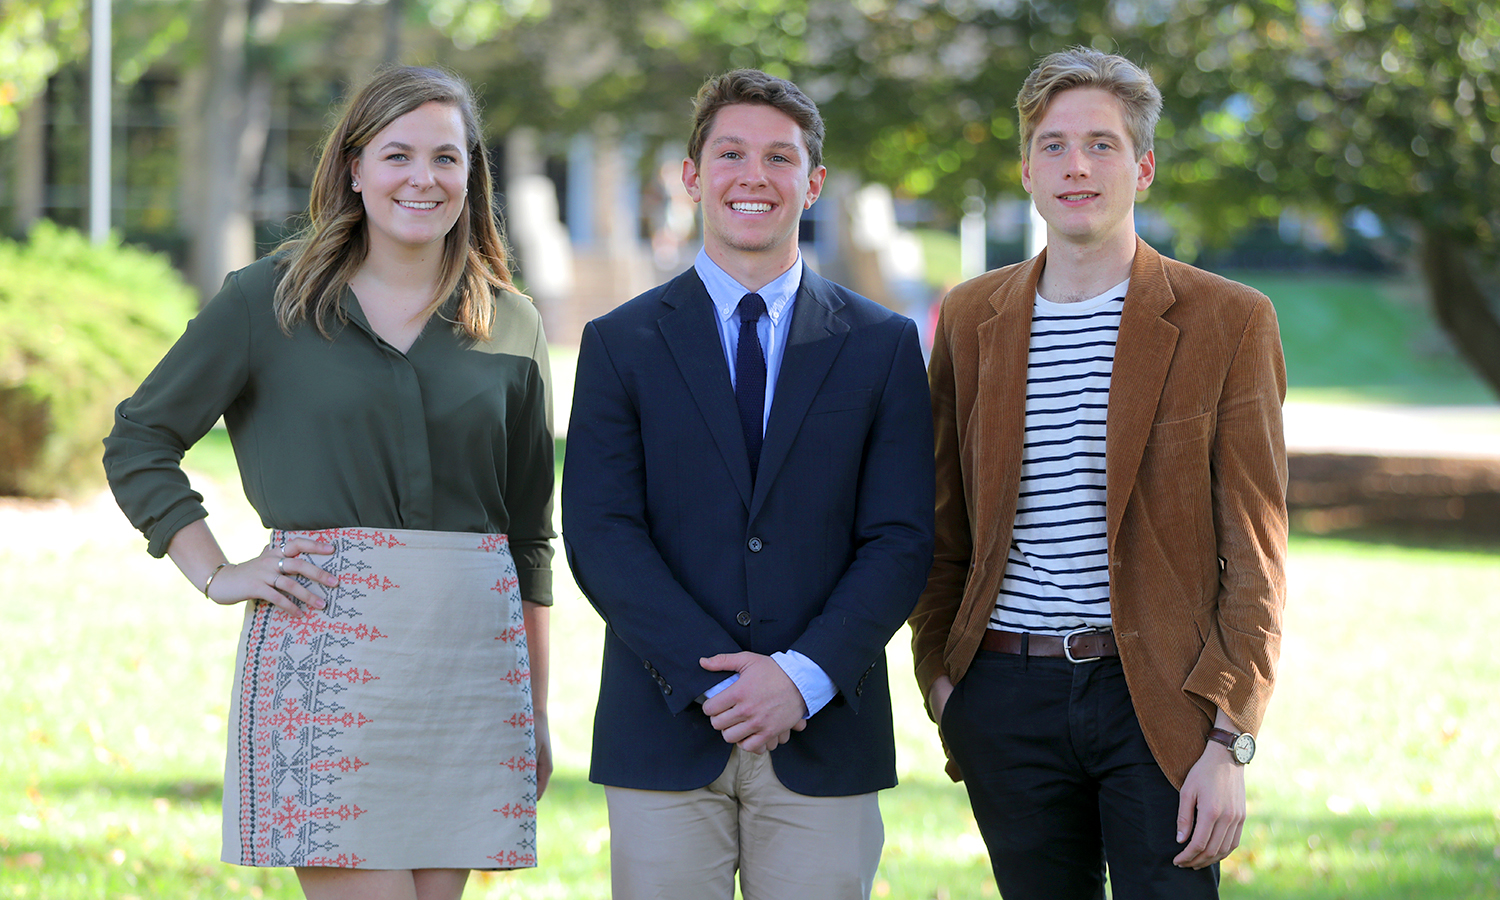 Sasha Carey 'X, Dylan Morris 'X and Alec Rhodes 'X attend the 65th Annual Meeting of the New York State Sociological Association held at St. John Fisher College to present their research.  Each is working on an Honors project(?) with Associate Professor of Sociology Renee Monson.